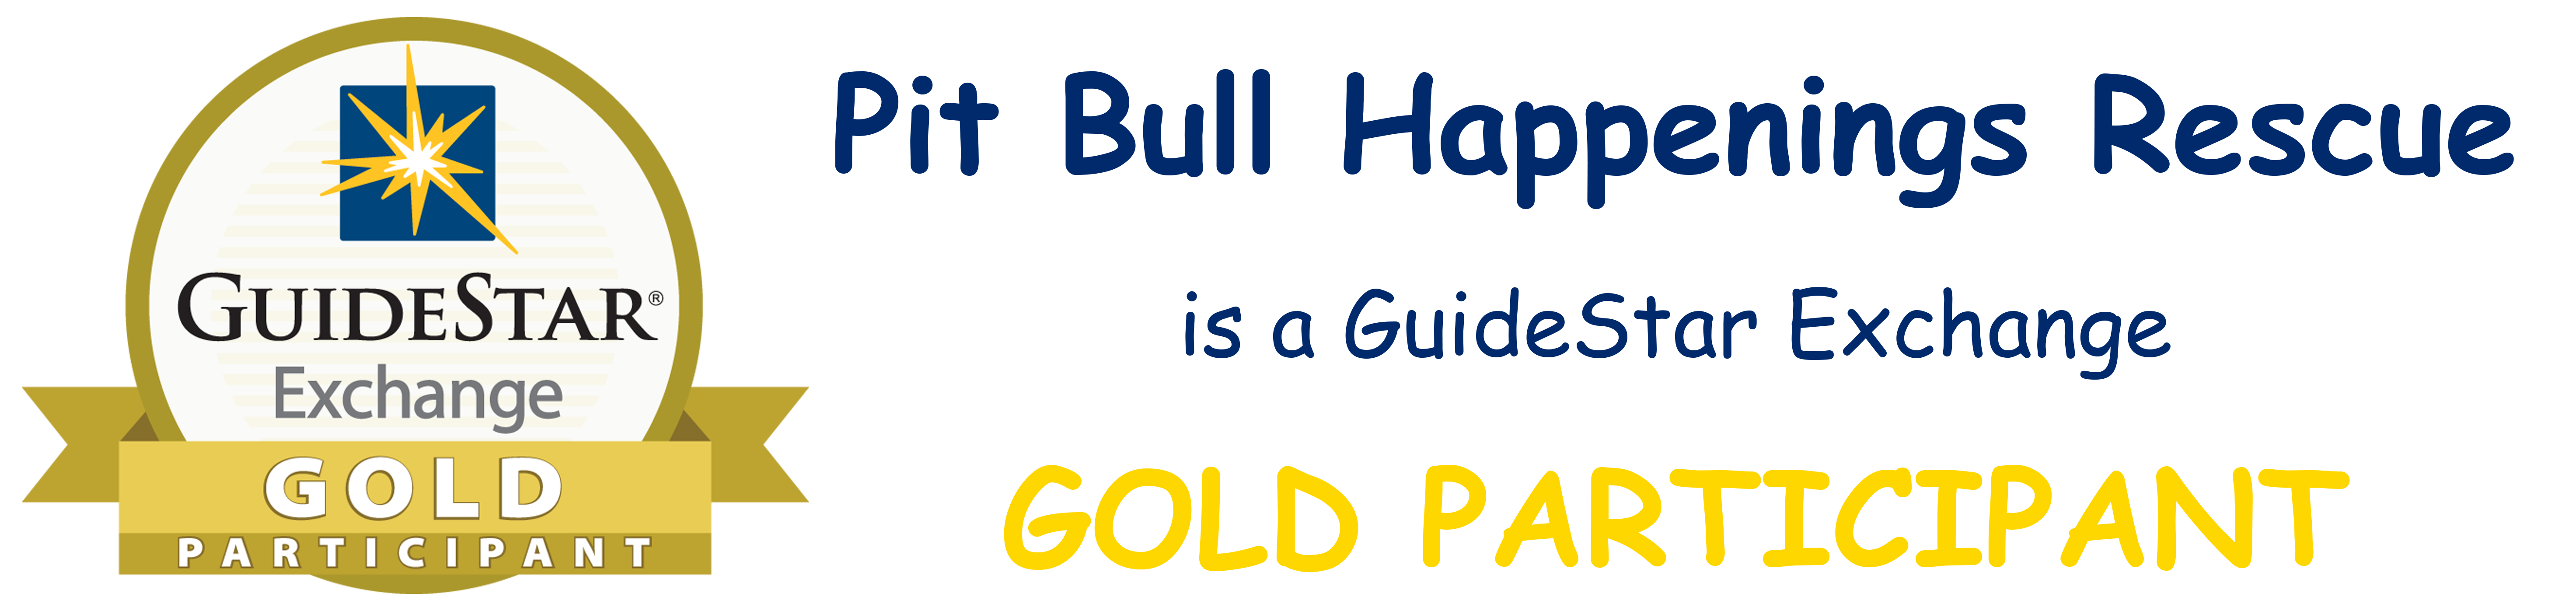 Pit Bull Happenings Rescue is a GuideStar Exchange Gold Participant